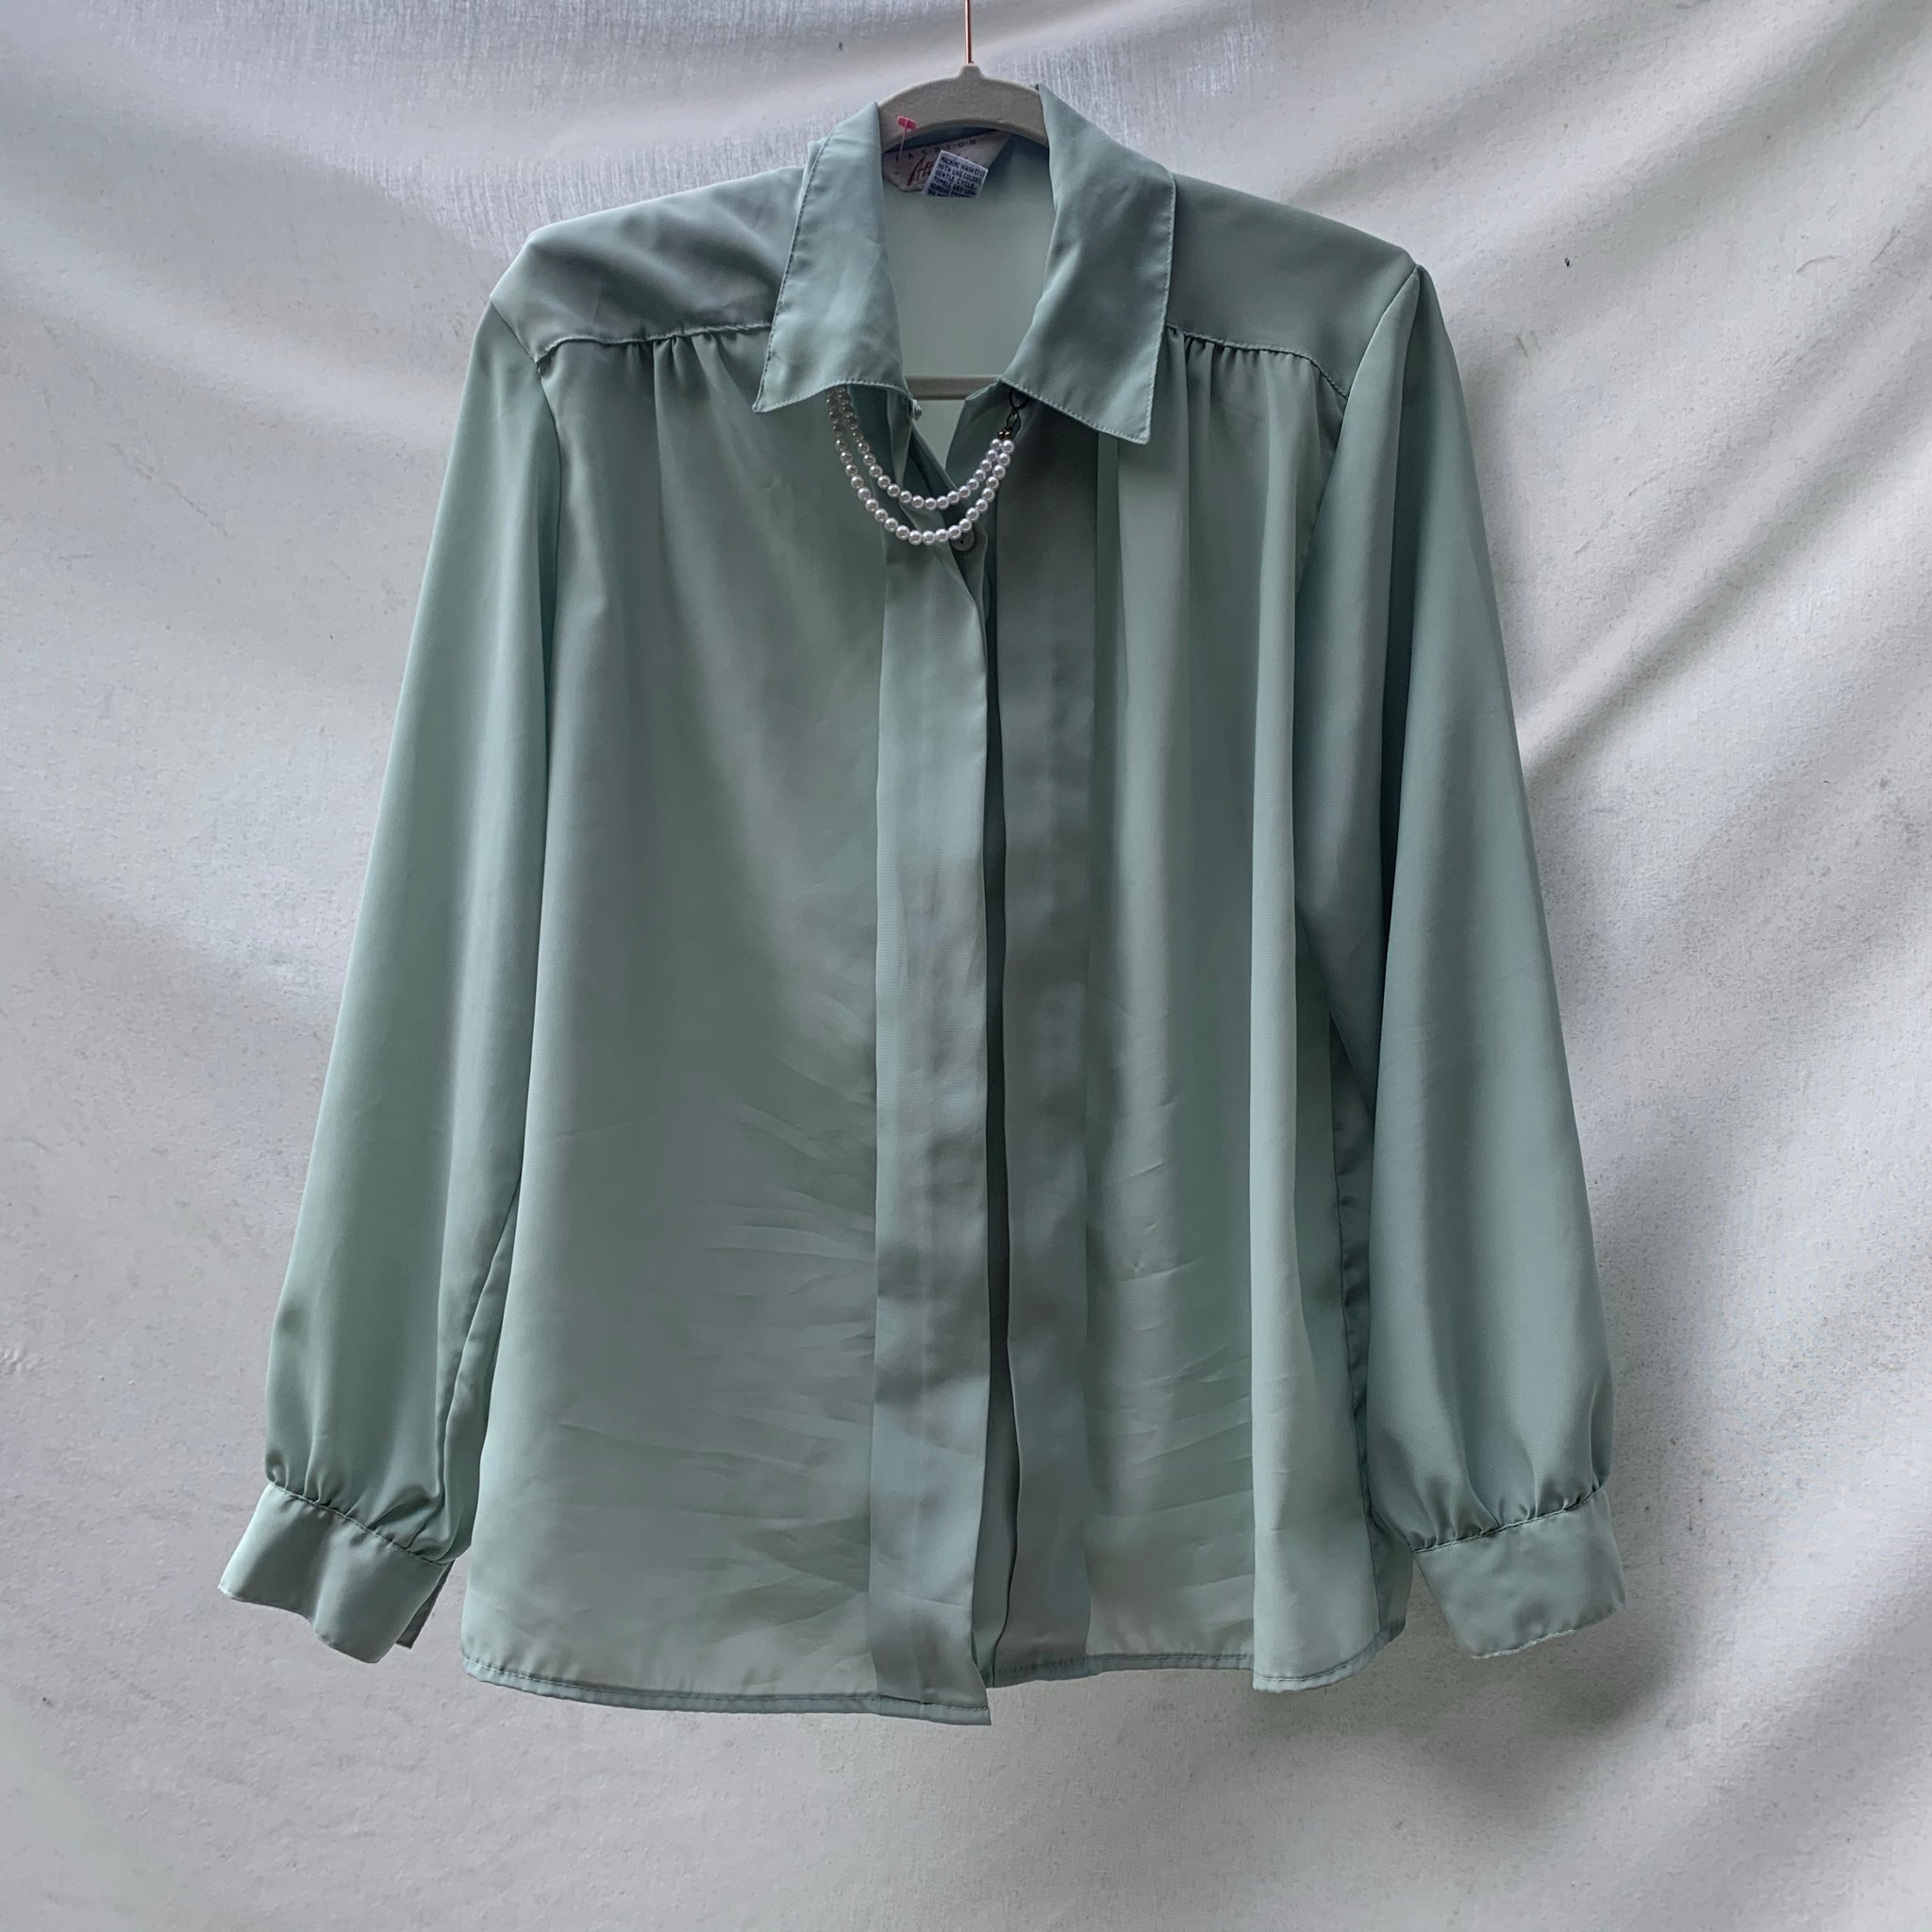 'Evelyn' Pearl Collar Sea Green Blouse (L) - Shop Vanilla Vintage